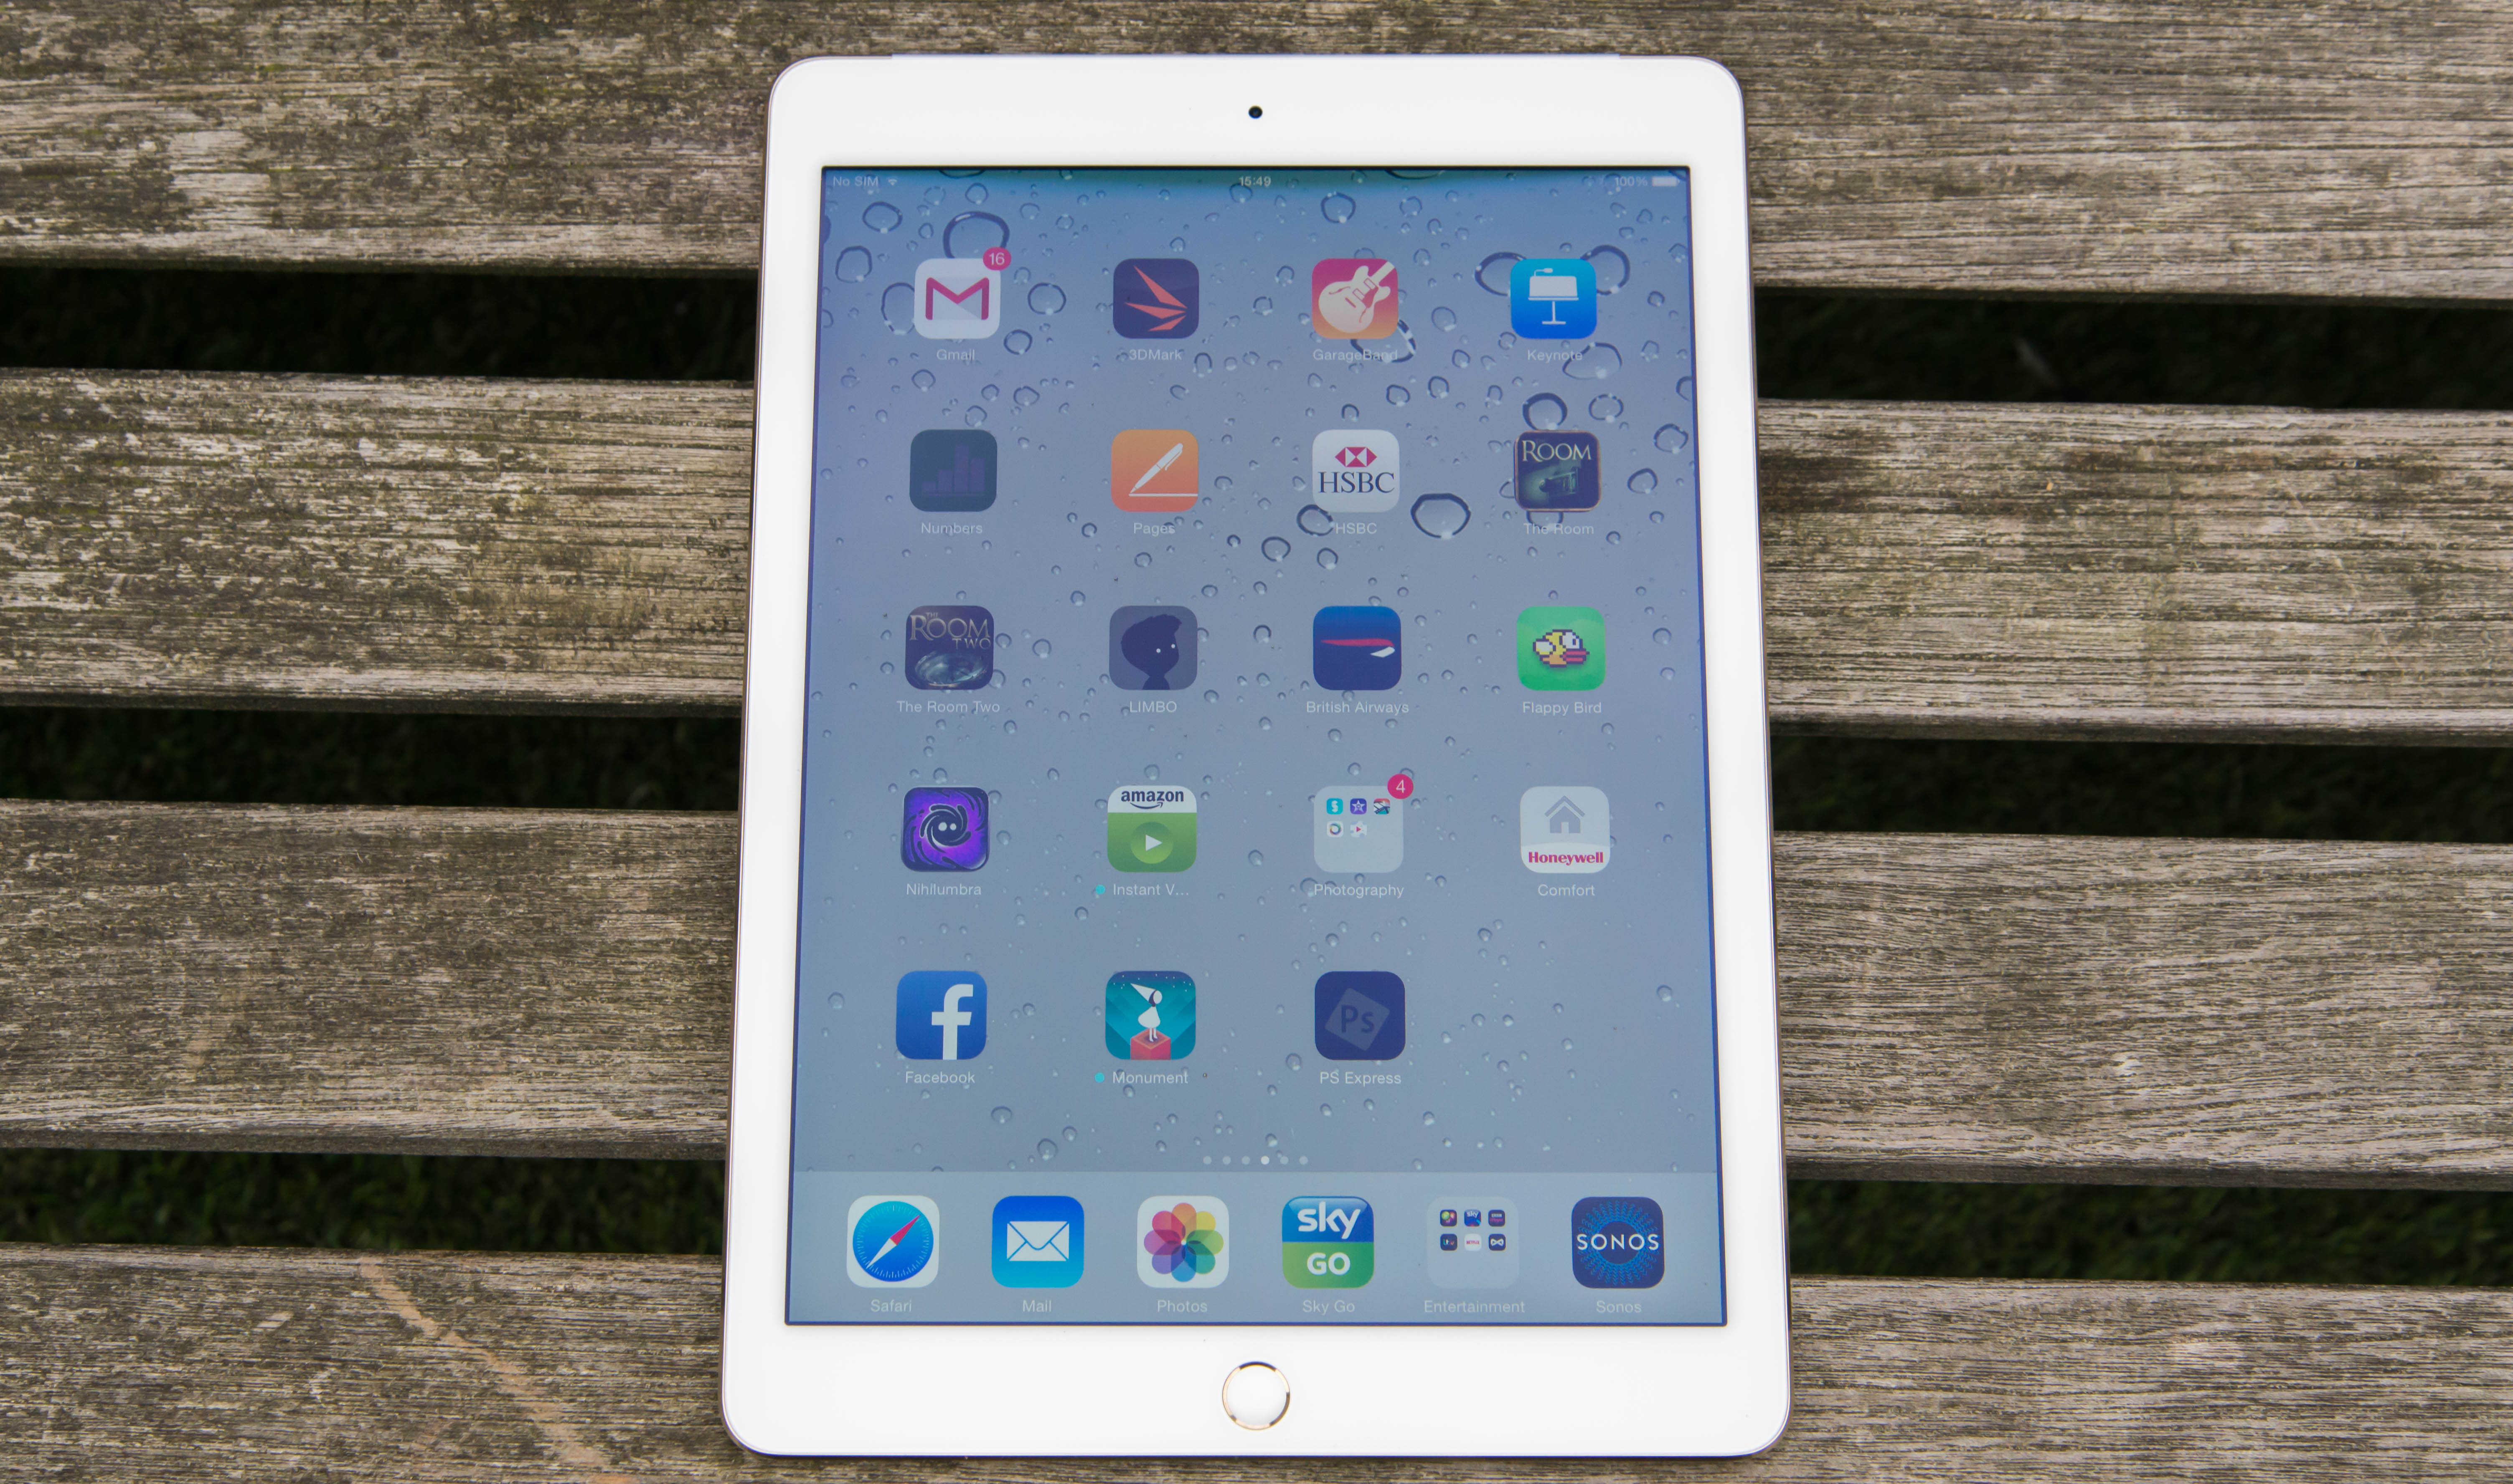 Apple Ipad Air 2 Review Now With Ios 9 Expert Reviews